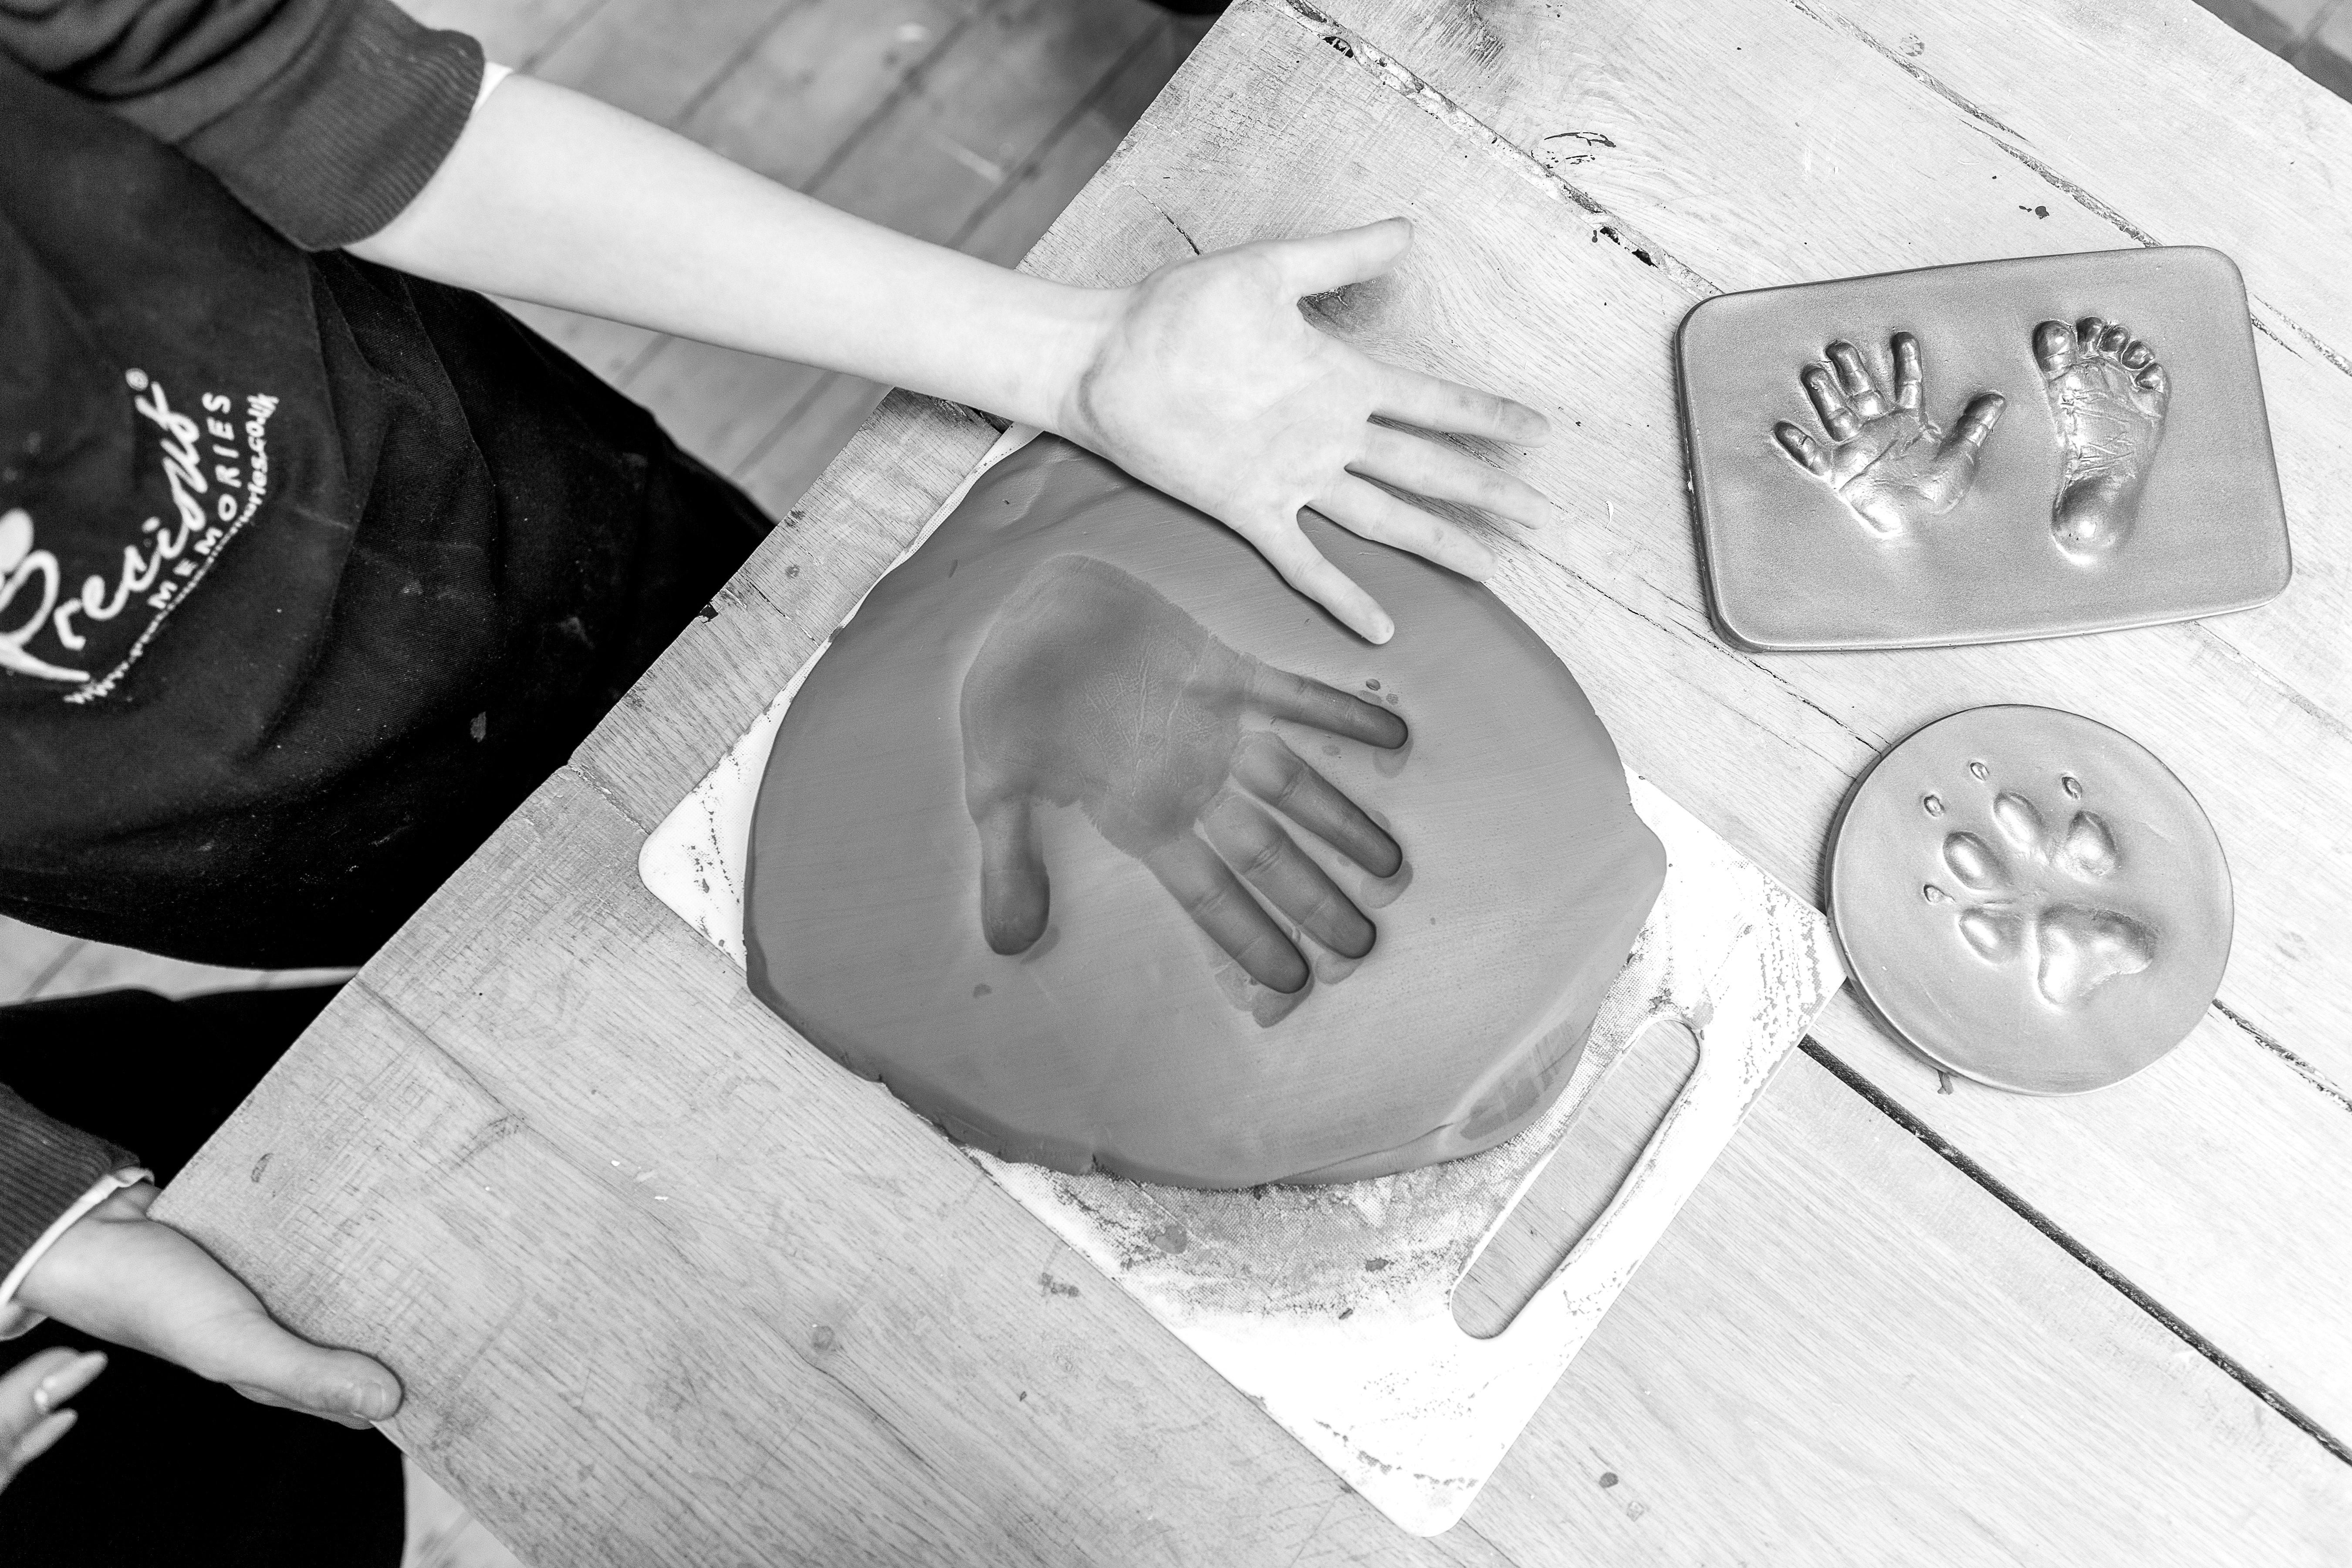 2d hand and foot impression clay tile